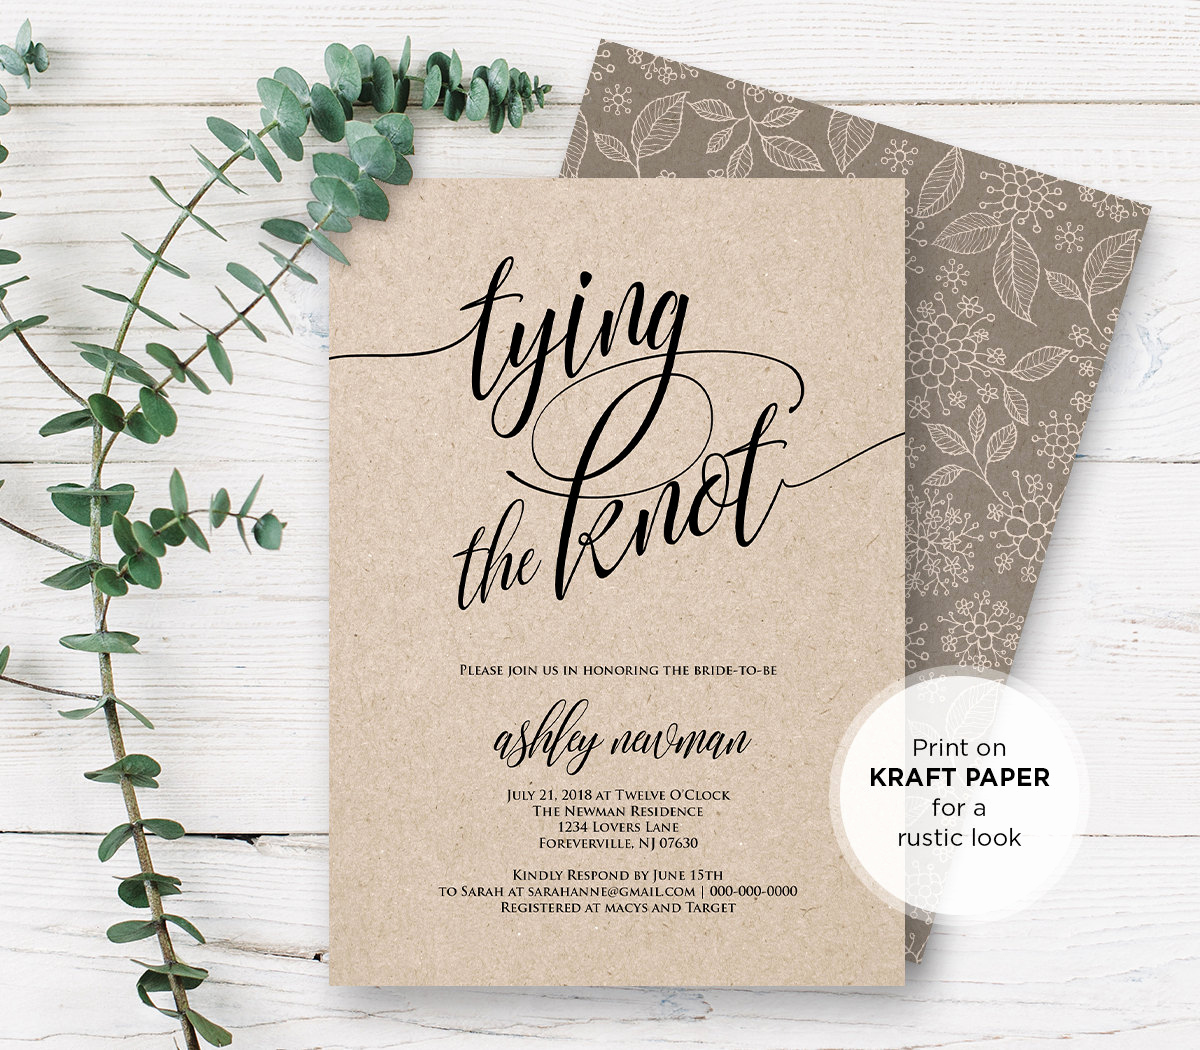 Tying the Knot Invitation New Rustic Bridal Shower Invitation Printable Tying the Knot